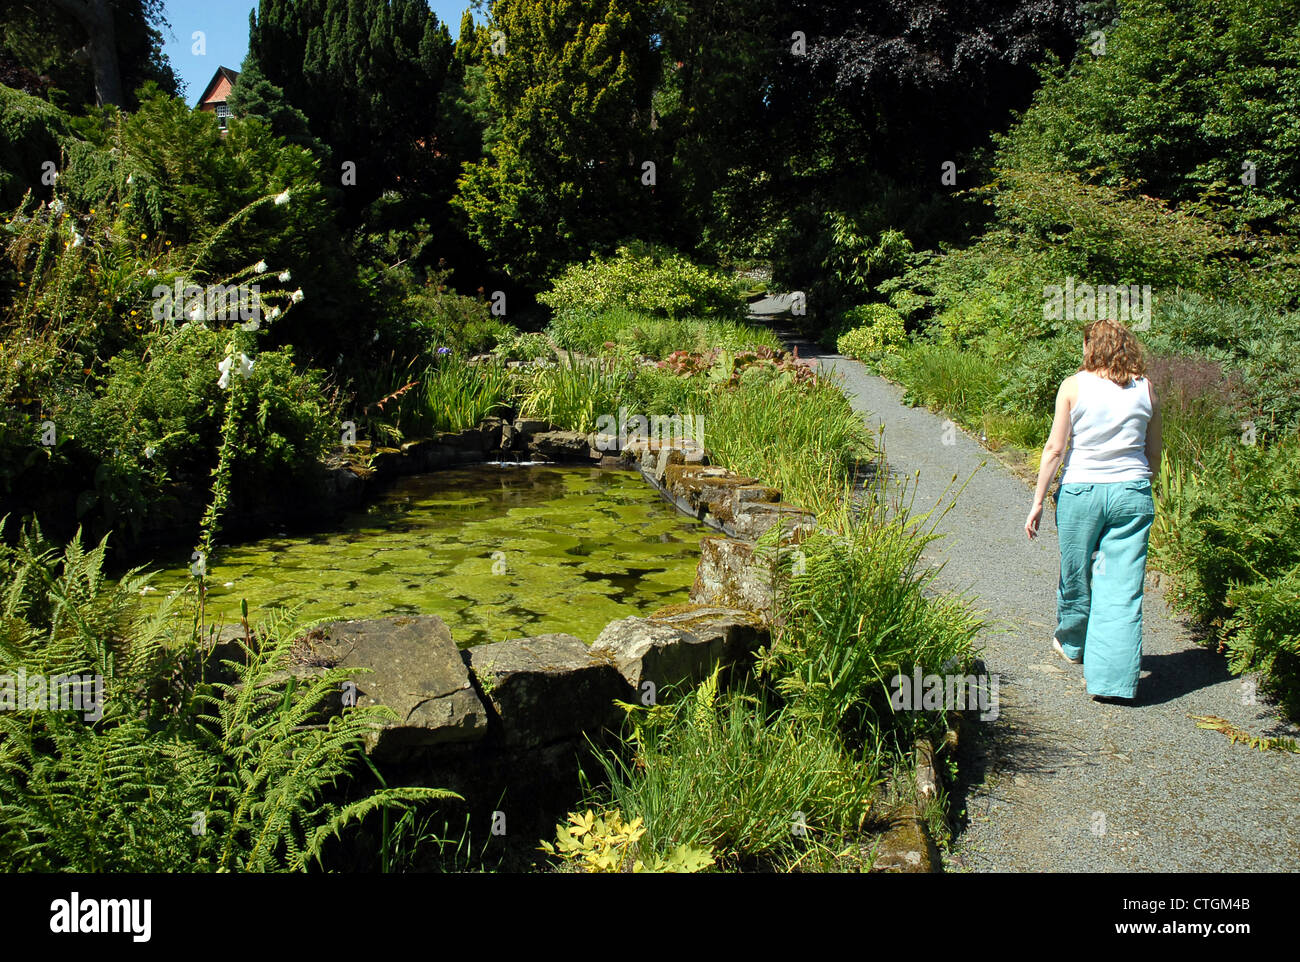 A woman on a path at Hergest Croft Gardens, Kington, Herefordshire - Stock Image